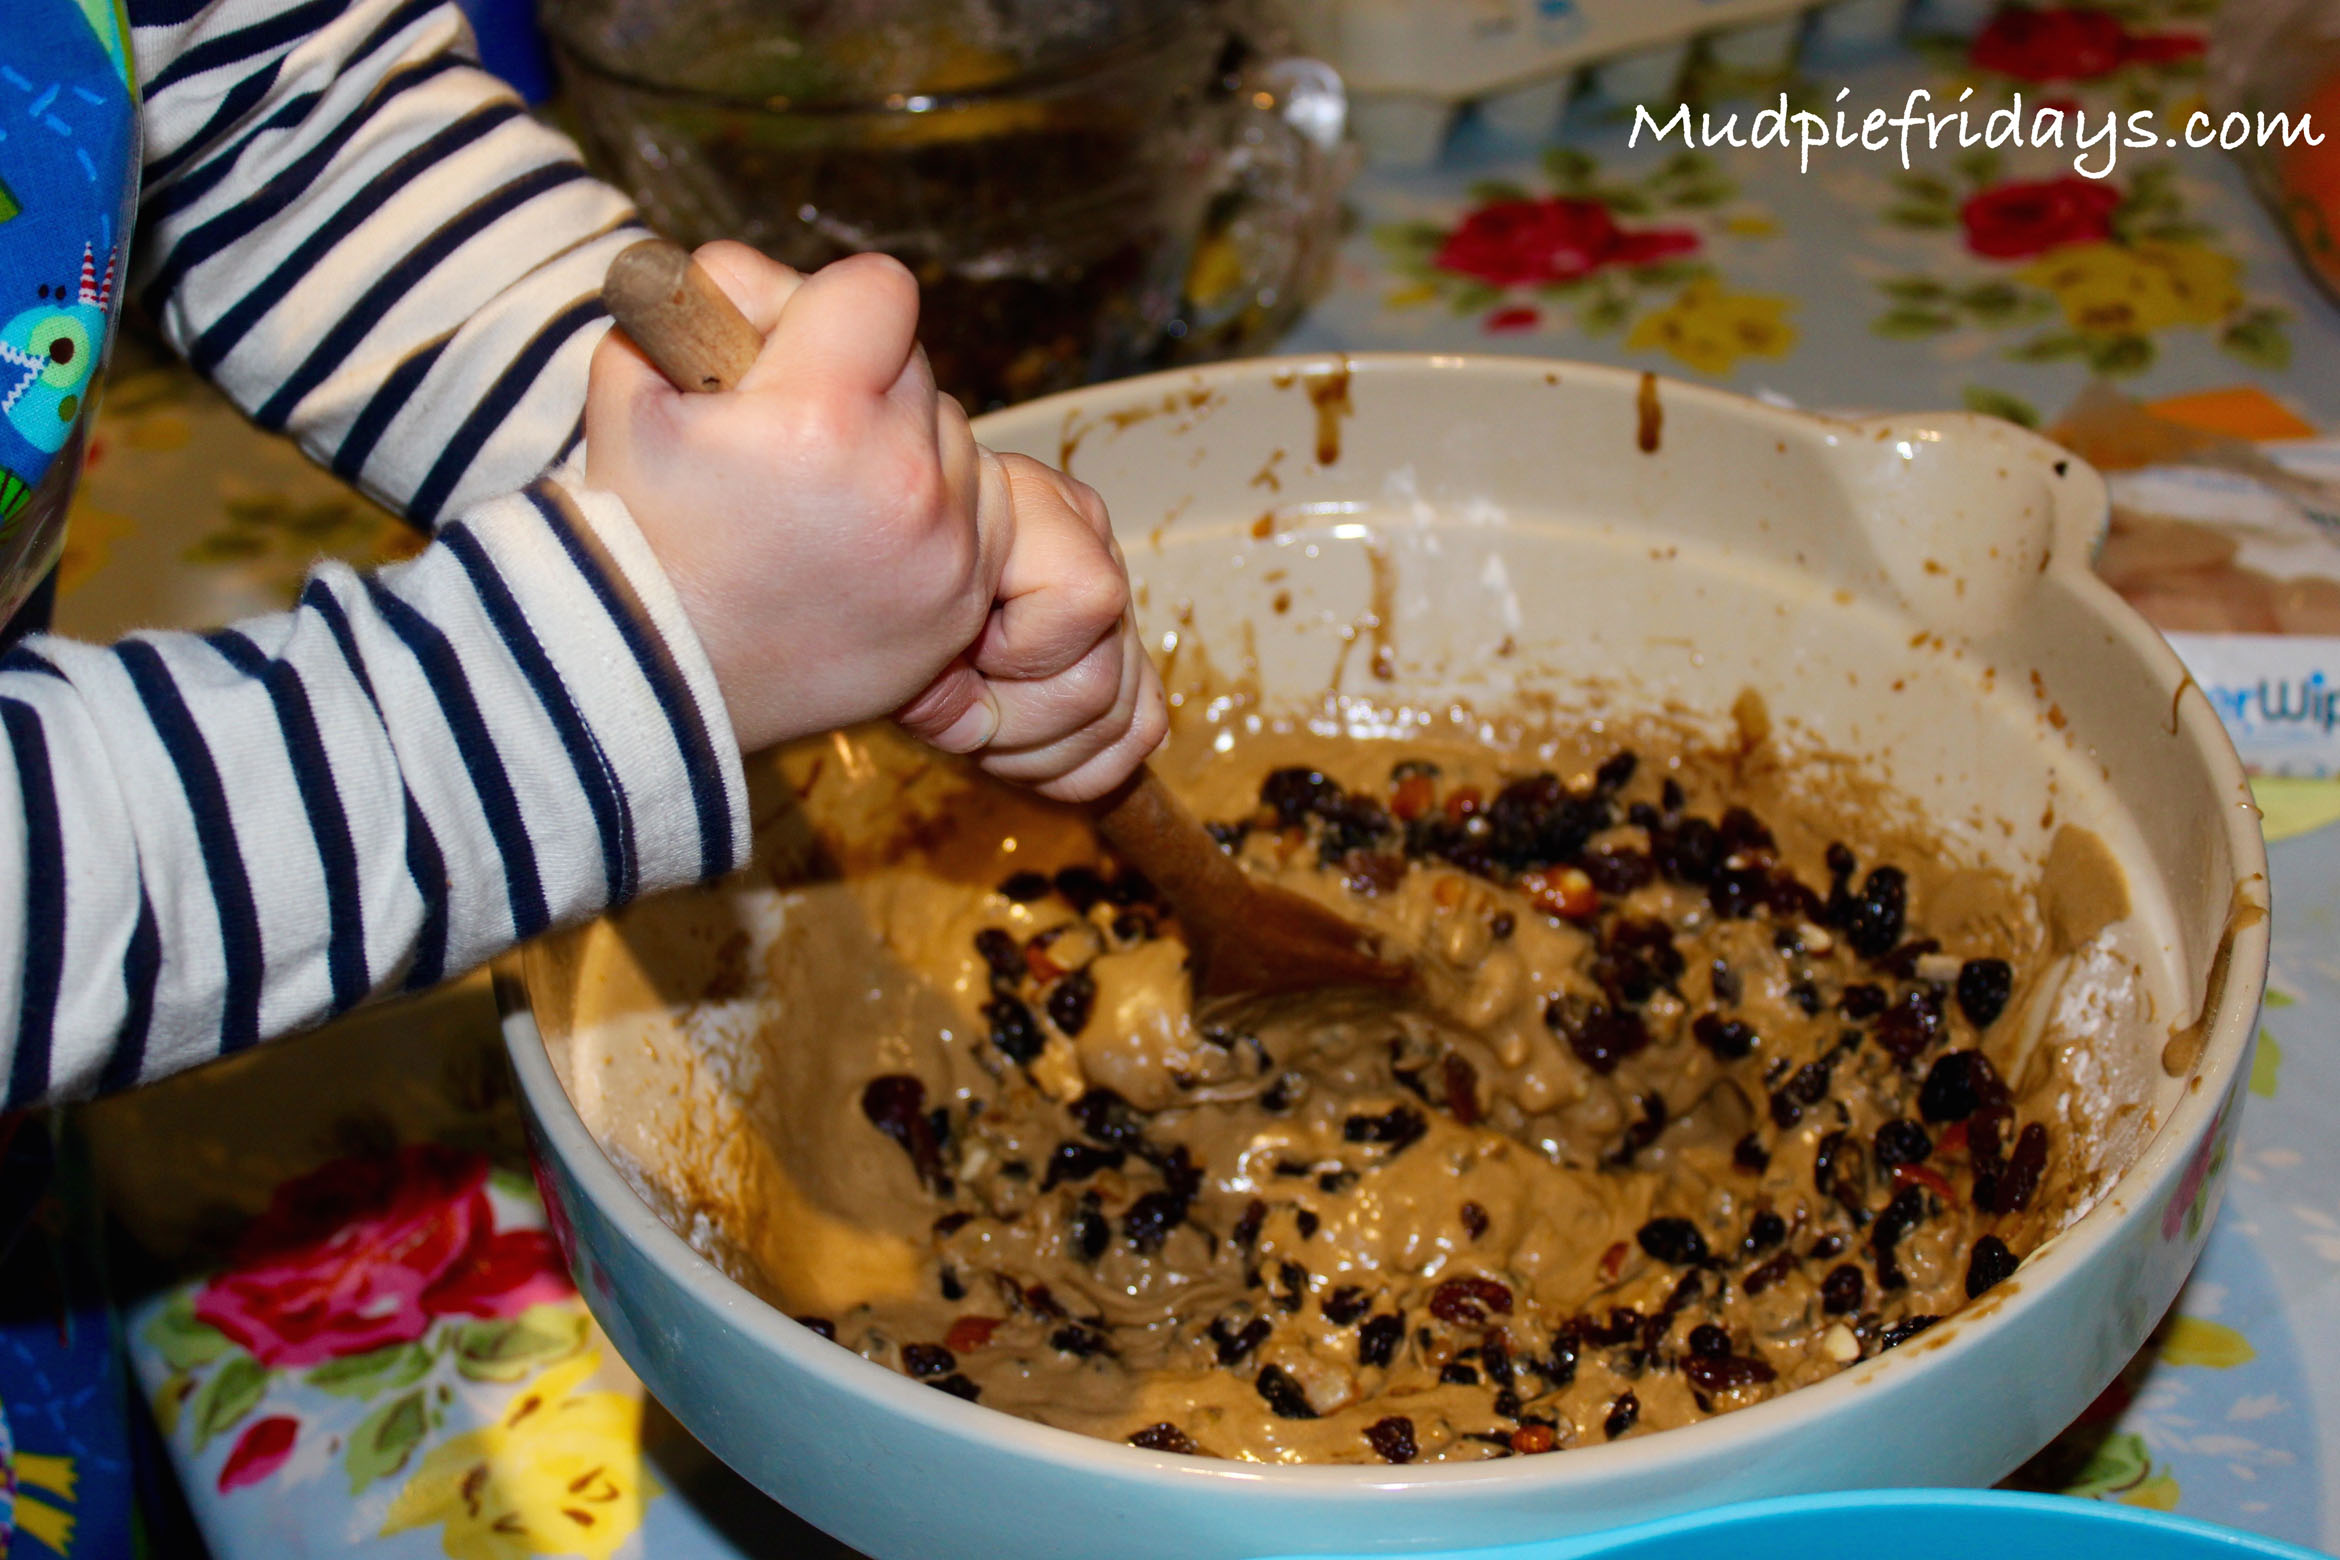 How to make christmas cake -  Making Christmas Cake